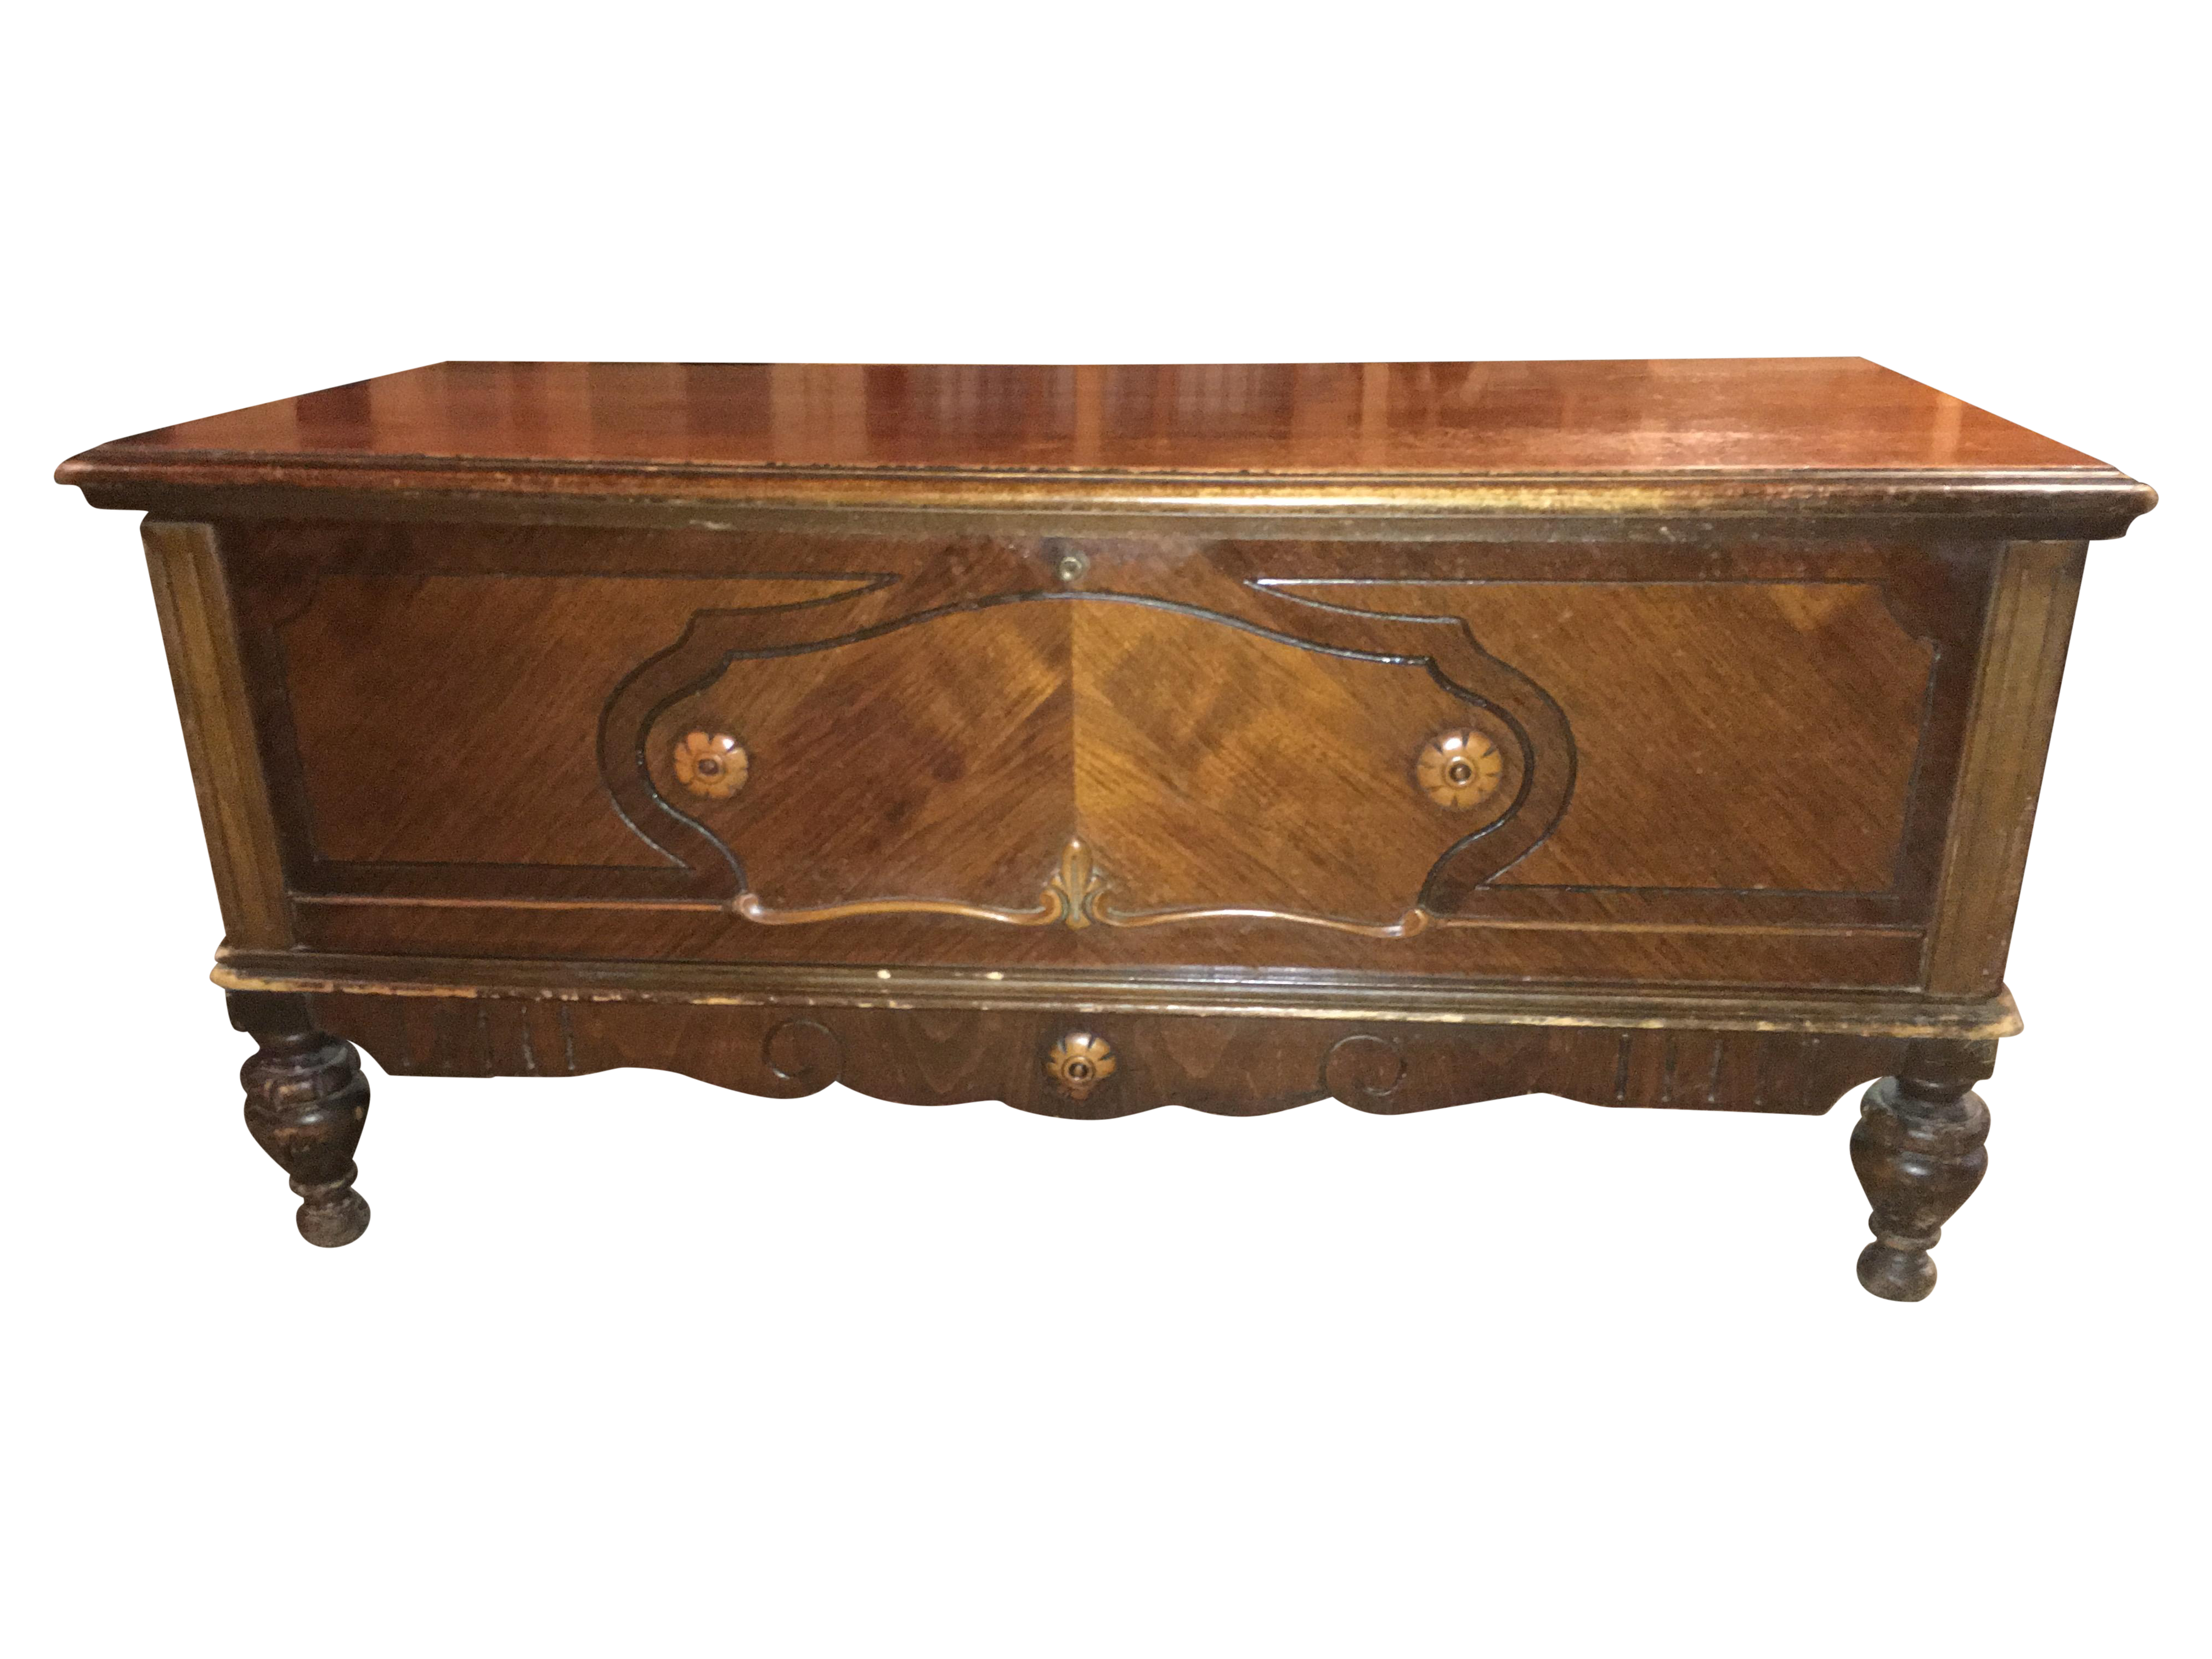 1937 Lane Bedroom Cedar Chest. Vintage   Used Lane Furniture Trunks and Blanket Chests   Chairish